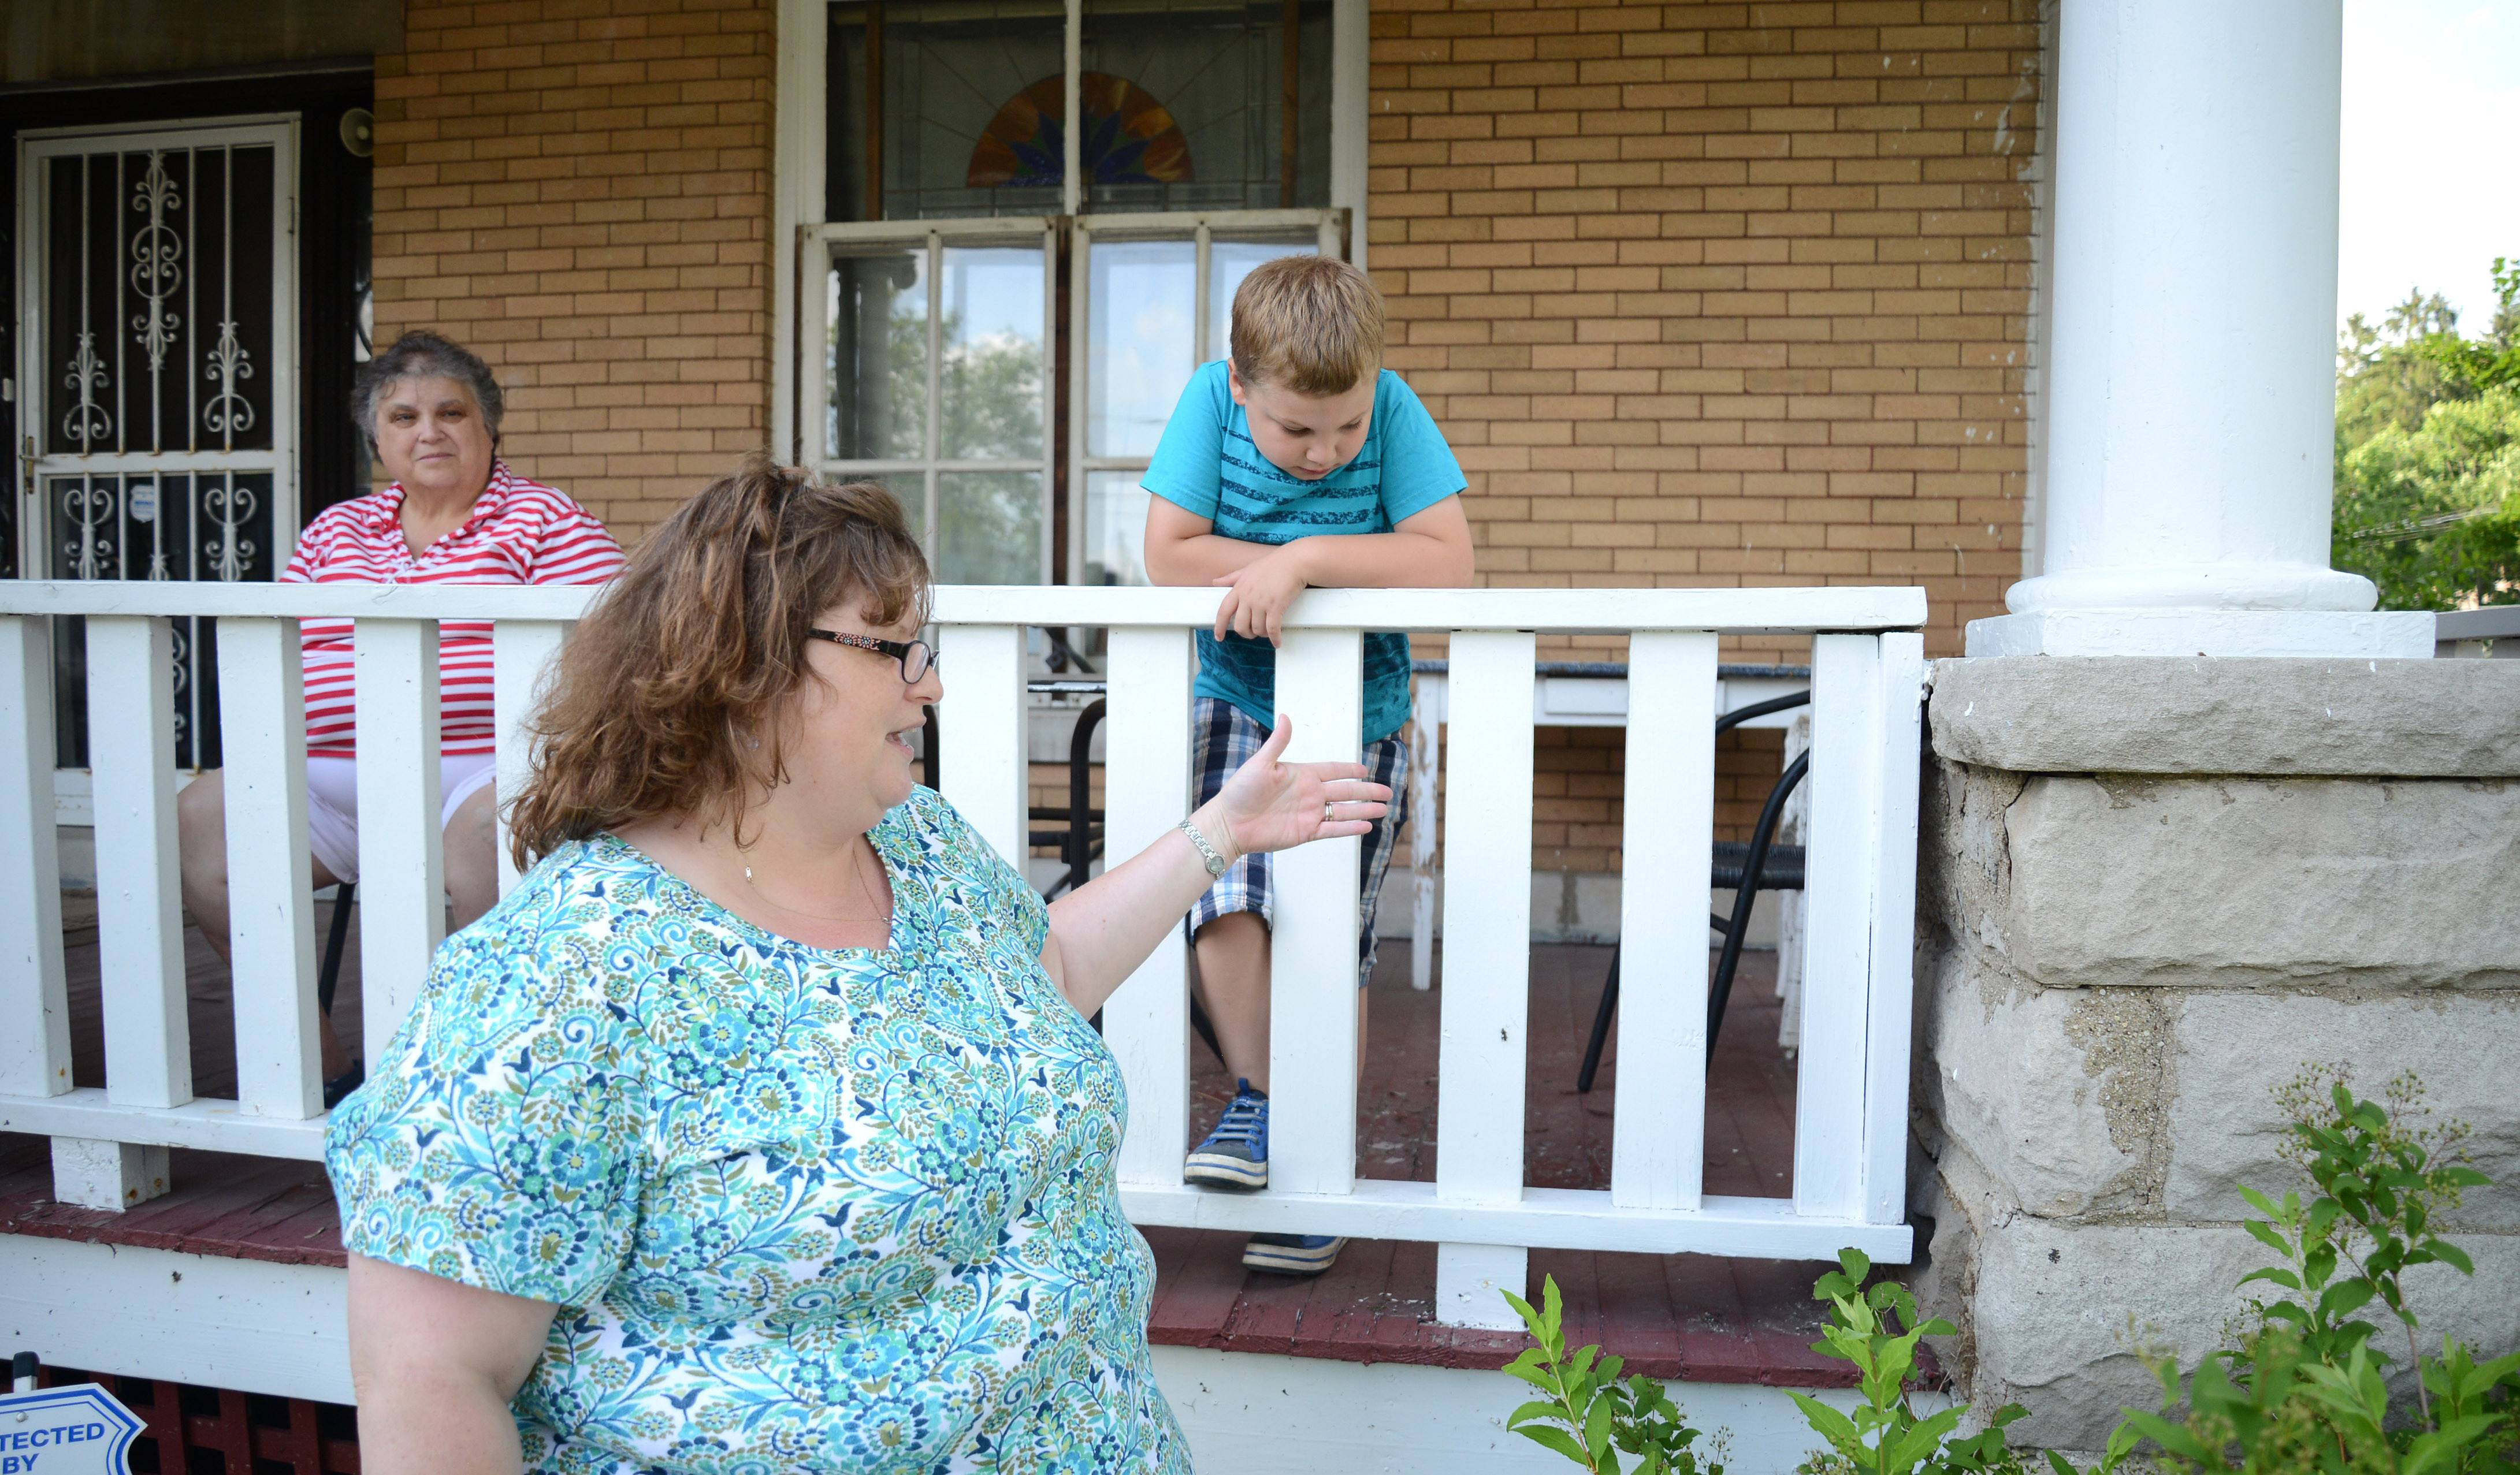 Jennifer Phillips talks about wanting to fix the stone pillars of her family's circa 1916 home. This is the type of project that would be eligible for funding from a new grant program from the group Admirers of Beautiful Old Dwellings of Elgin. Phillips is the group's co-president. Her mother, Anne Bird, of Elgin, and son, Ricky, 6, are on the porch.